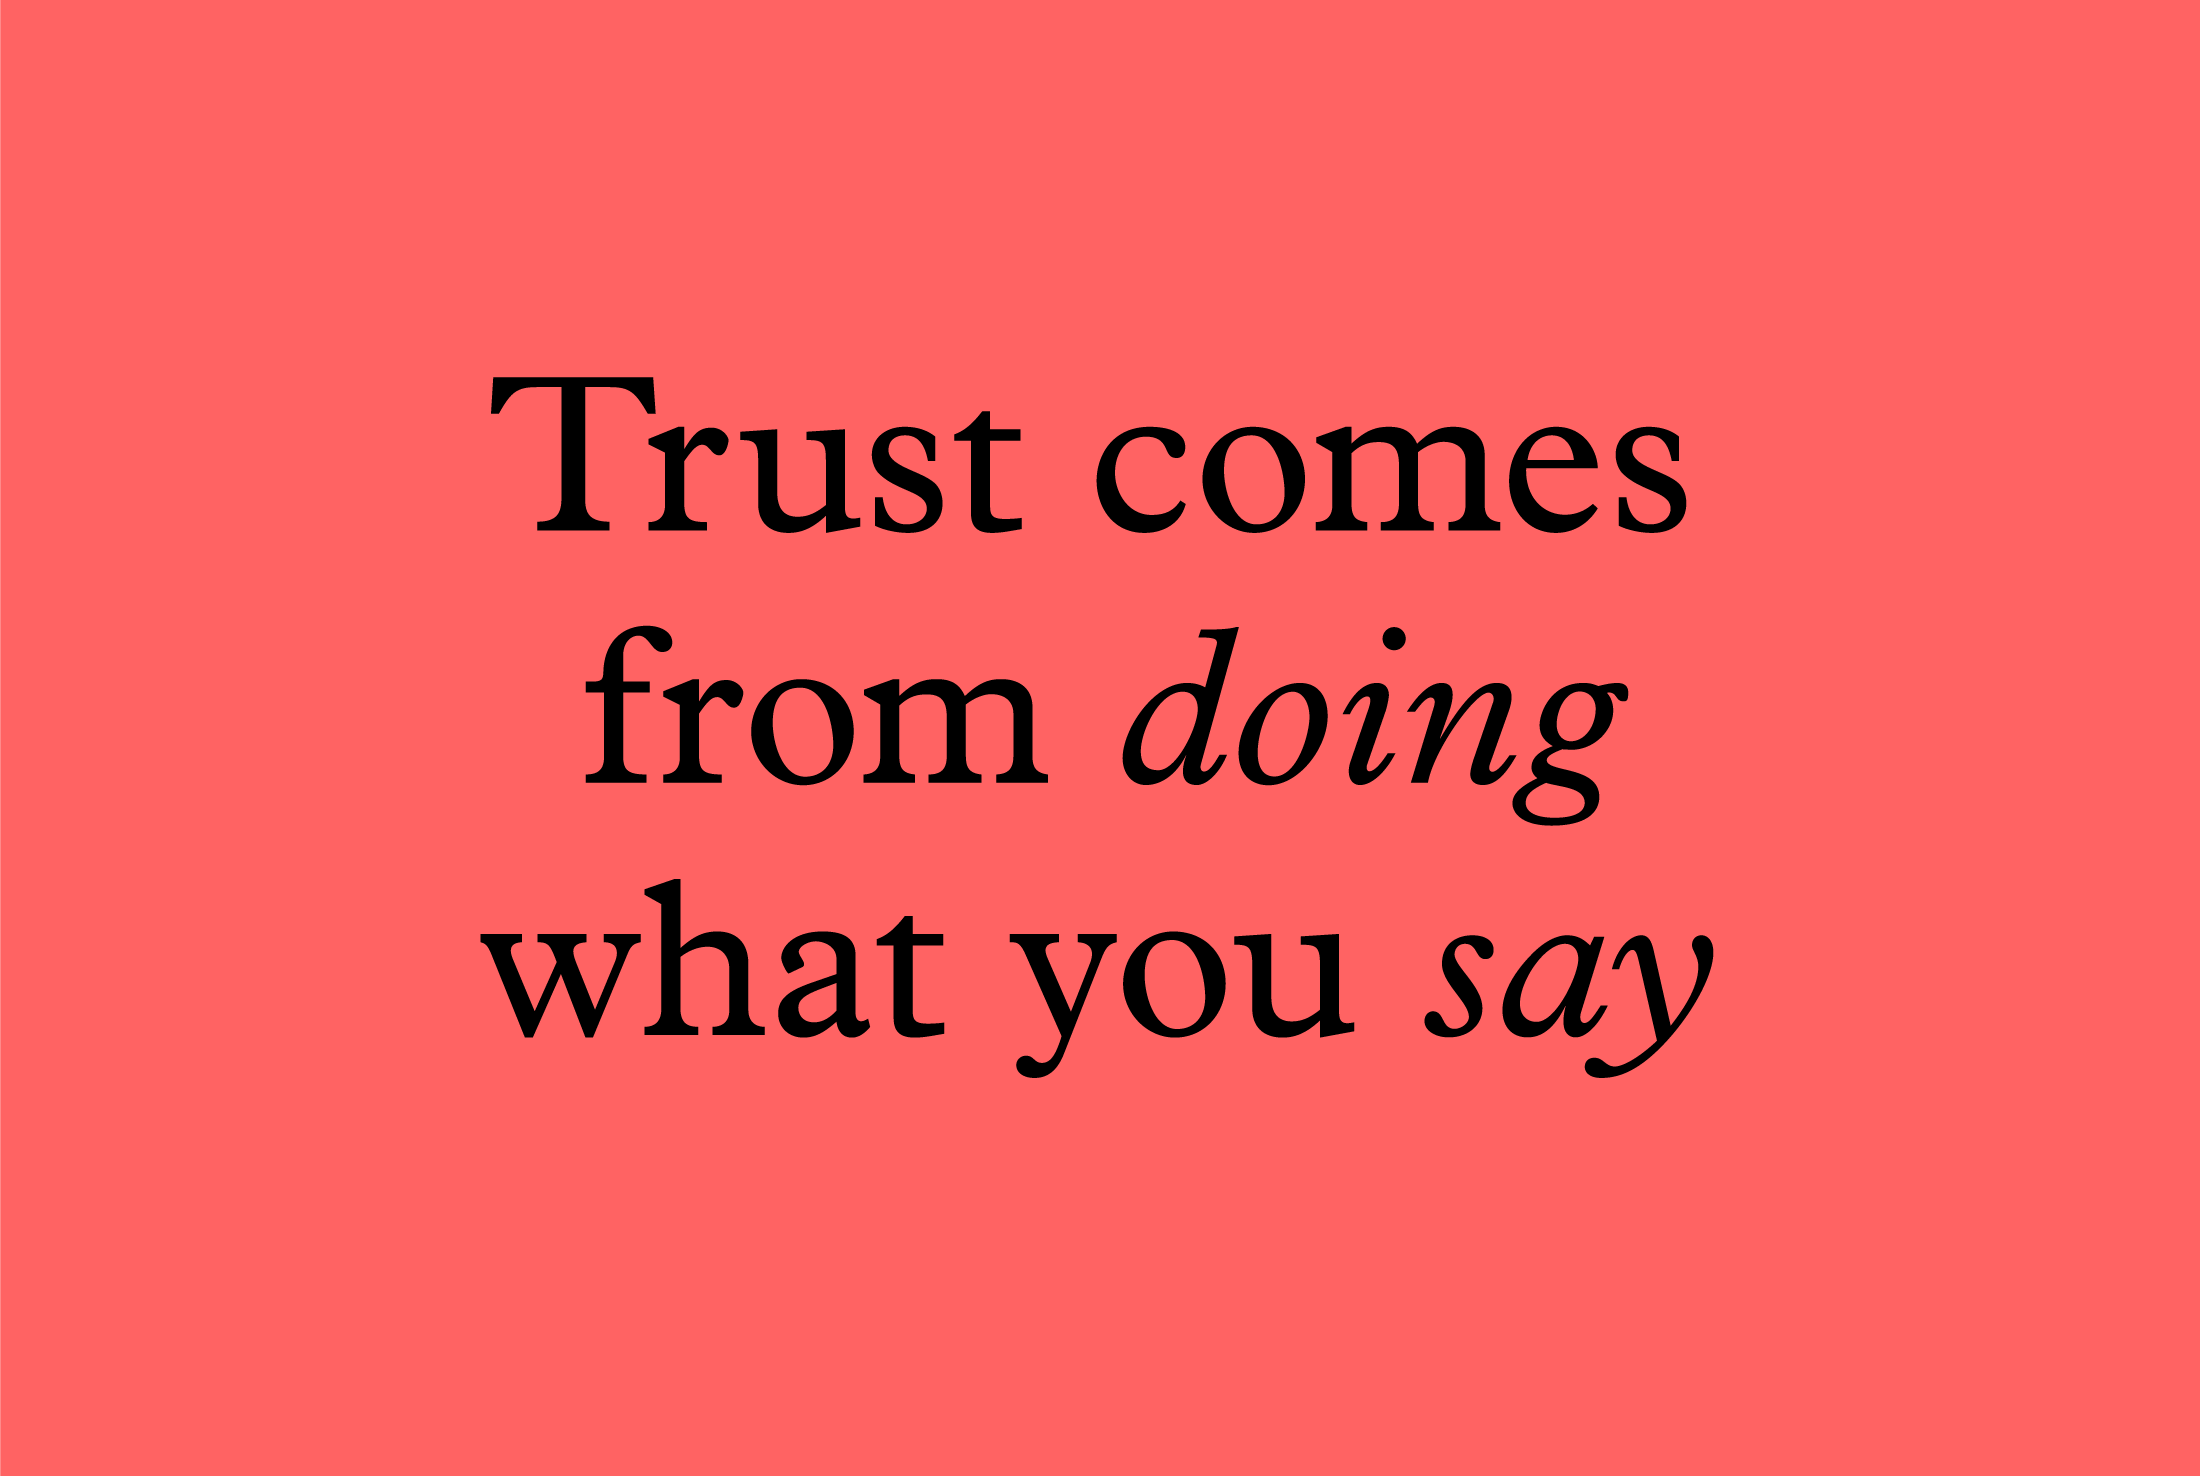 Trust comes from doing what you say